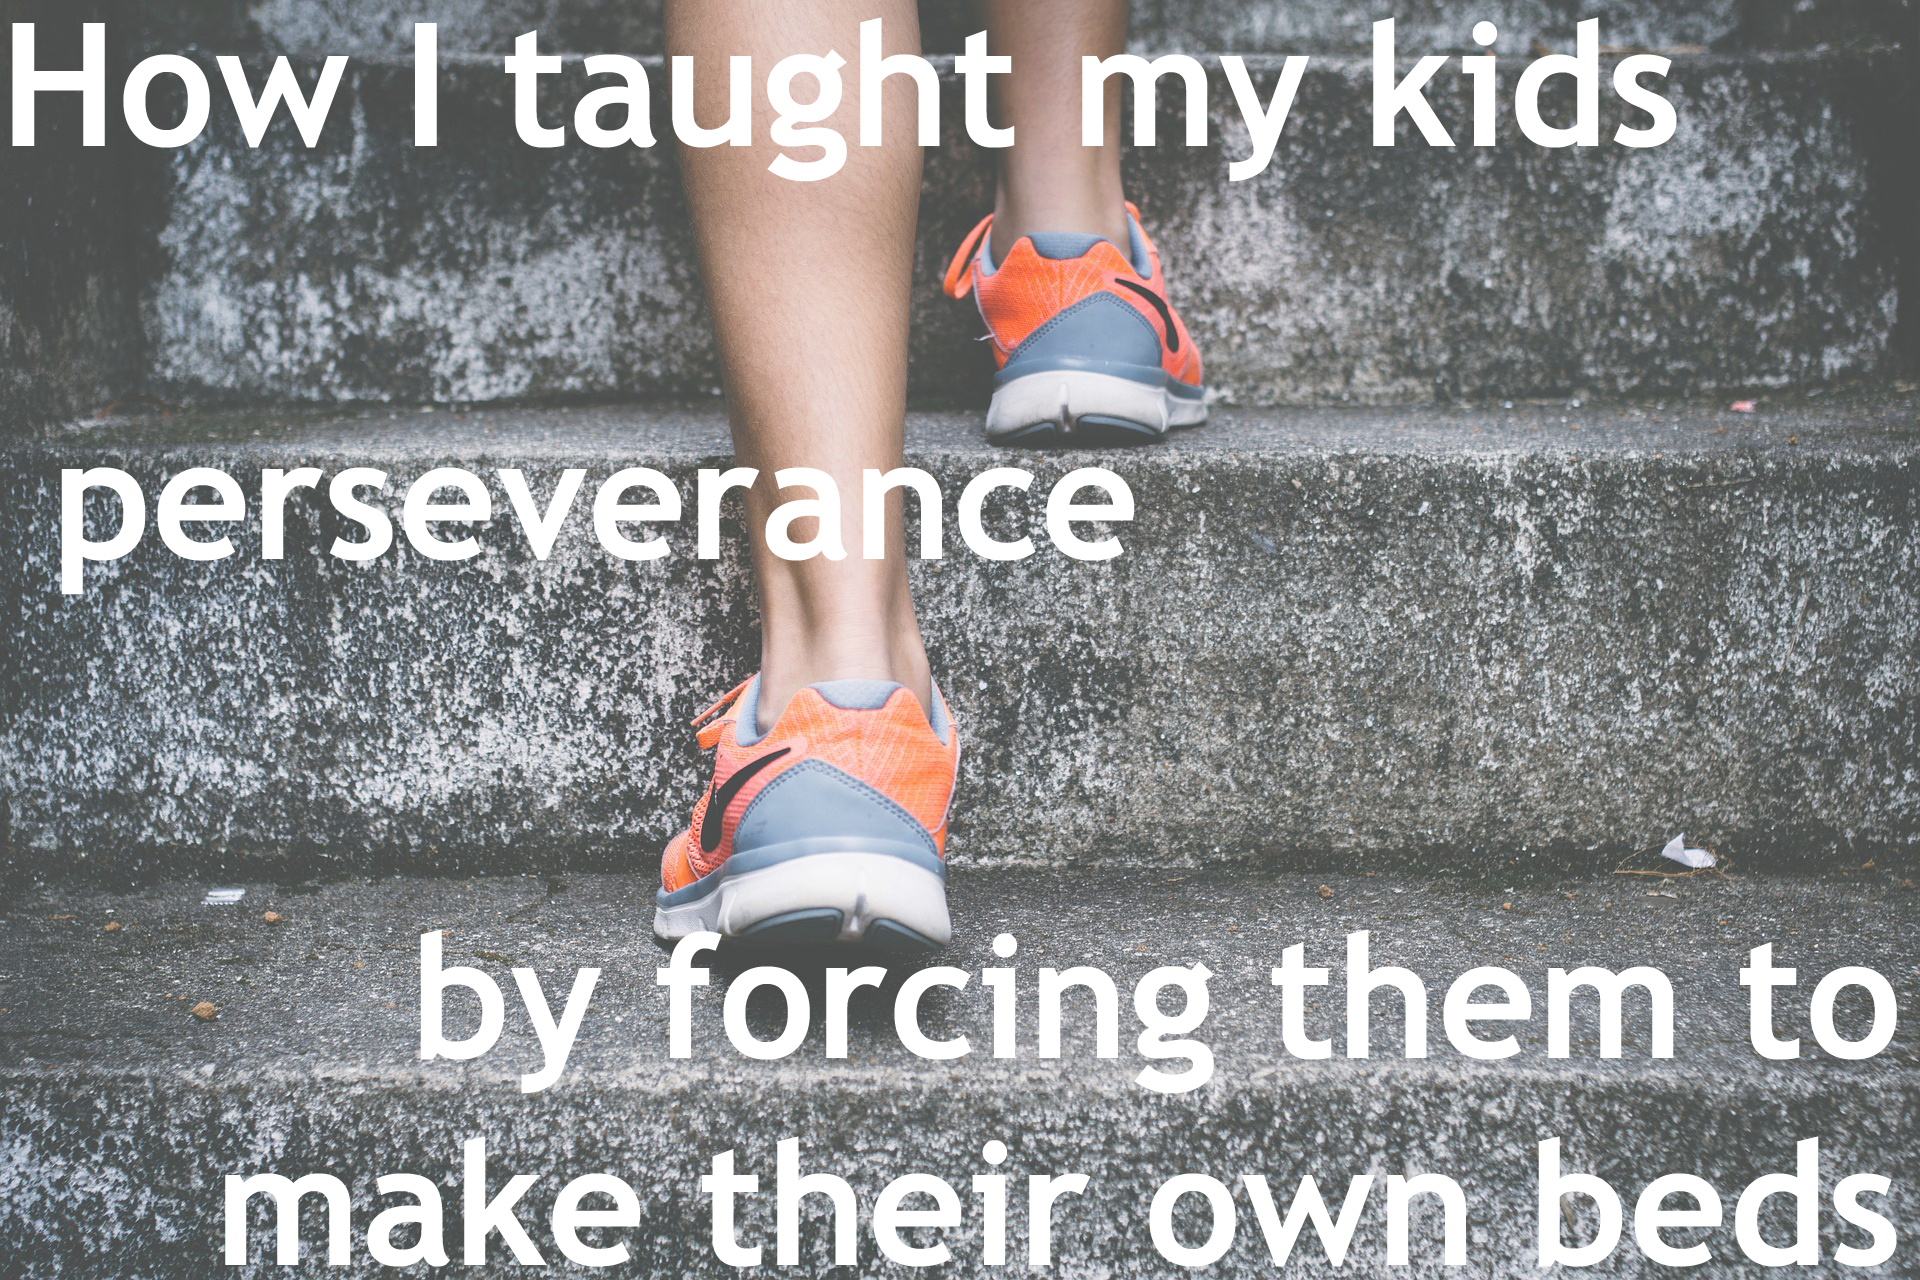 How I taught my kids perseverance by forcing them to make their own beds